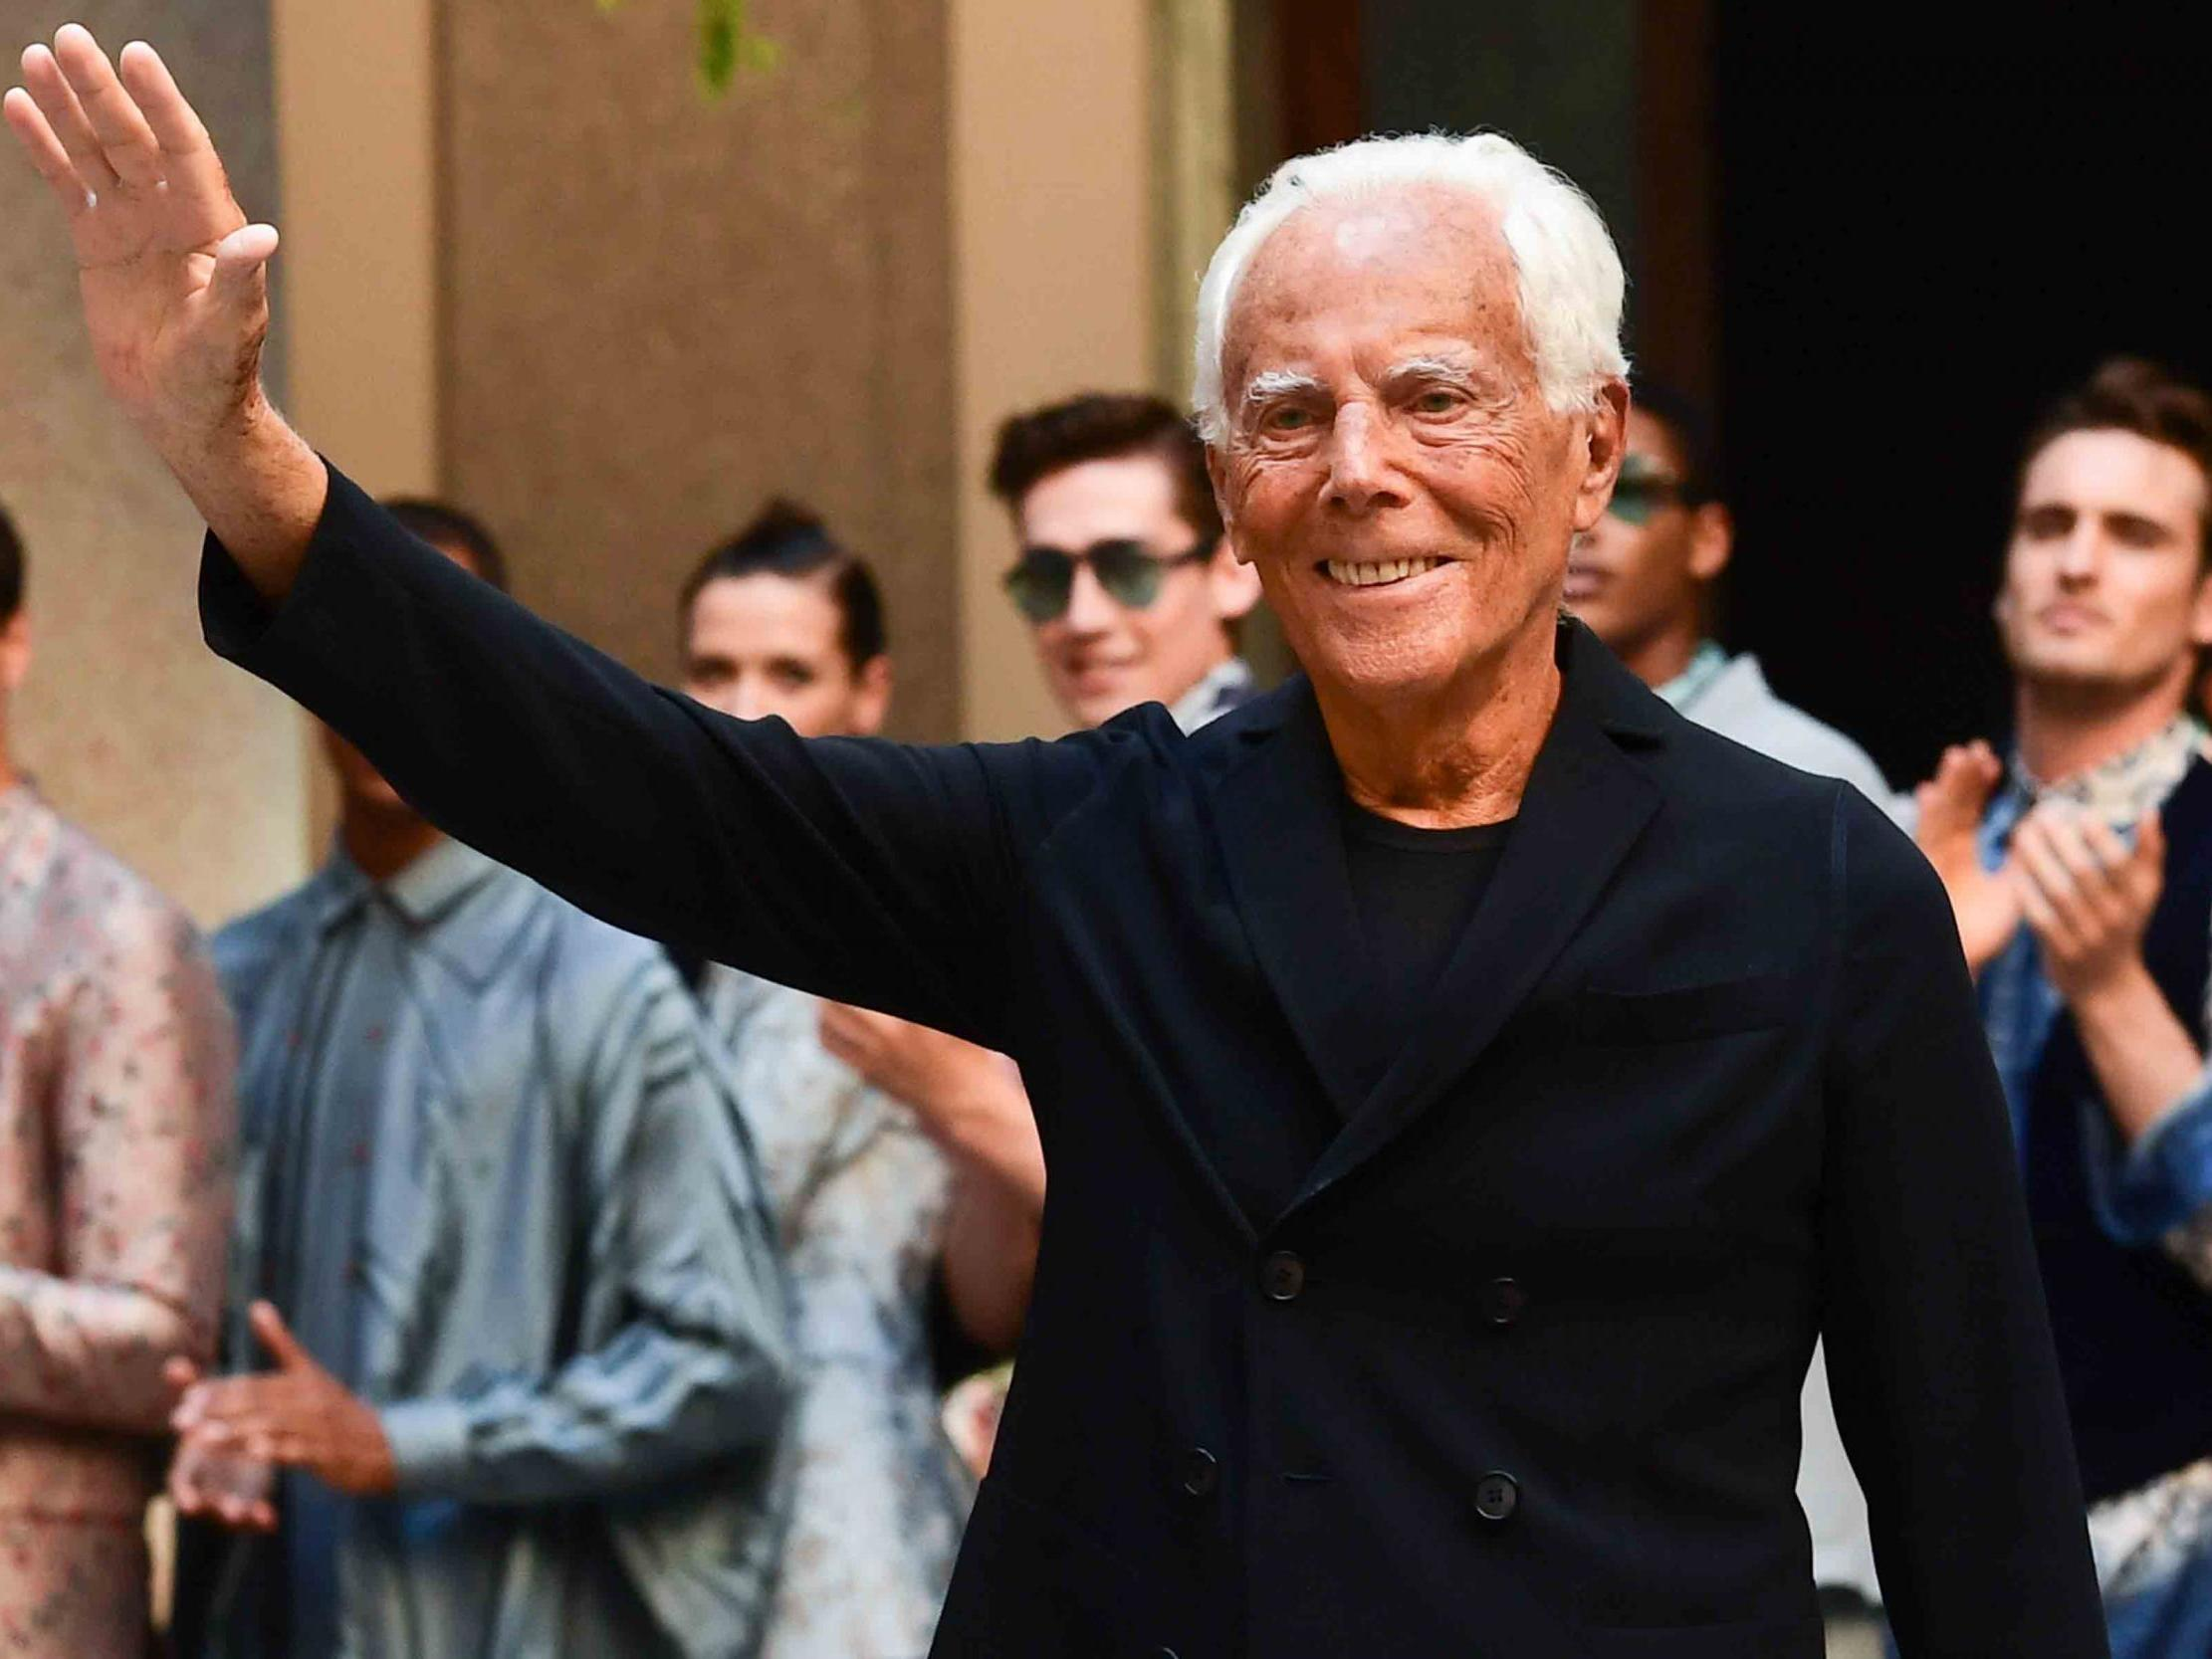 Giorgio Armani to receive Outstanding Achievement Award at 2019 Fash…